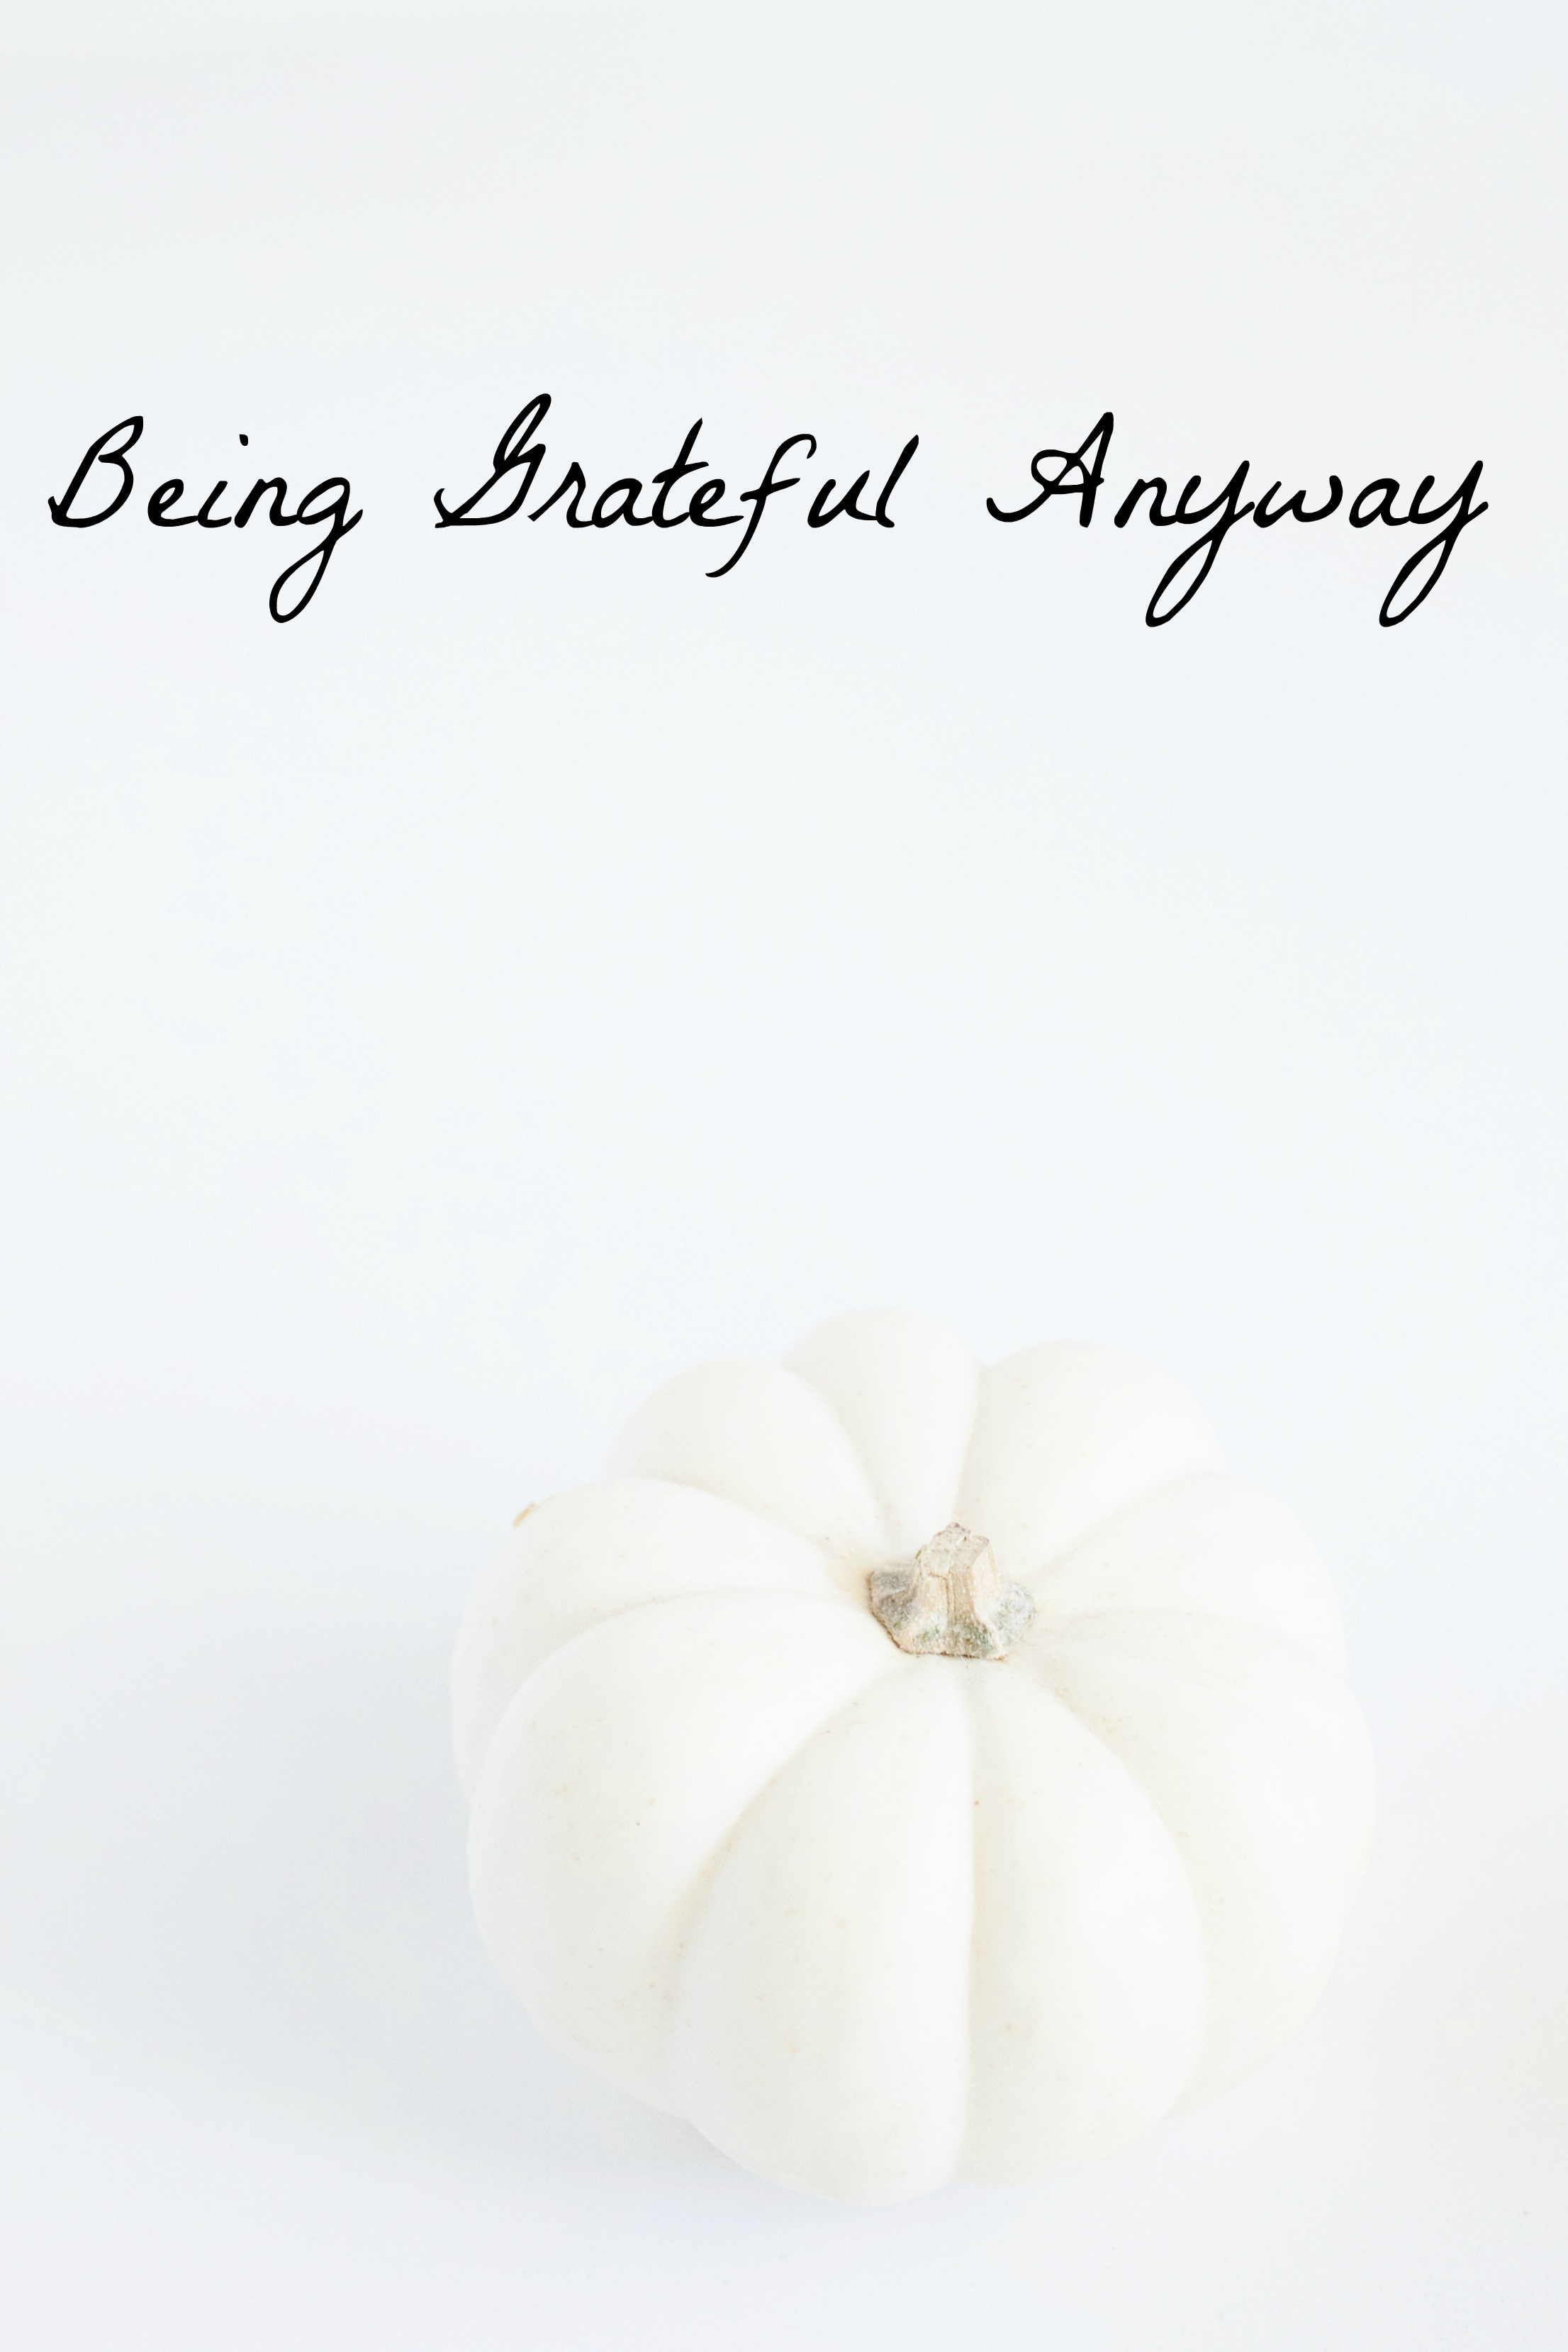 Choosing to be Grateful Anyway